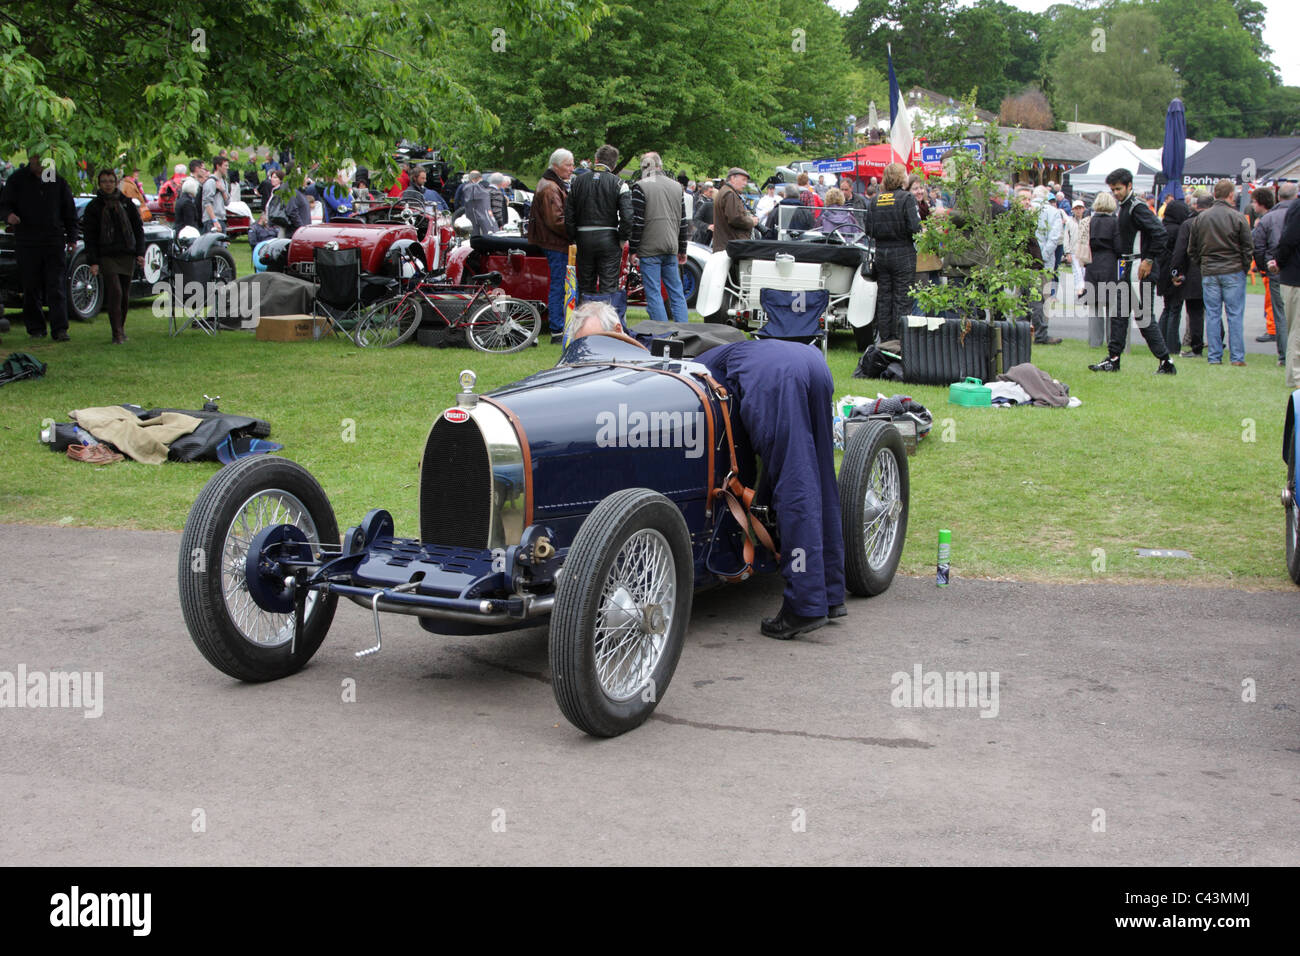 Bugatti Vintage Car Racing Stock Photos & Bugatti Vintage Car Racing ...